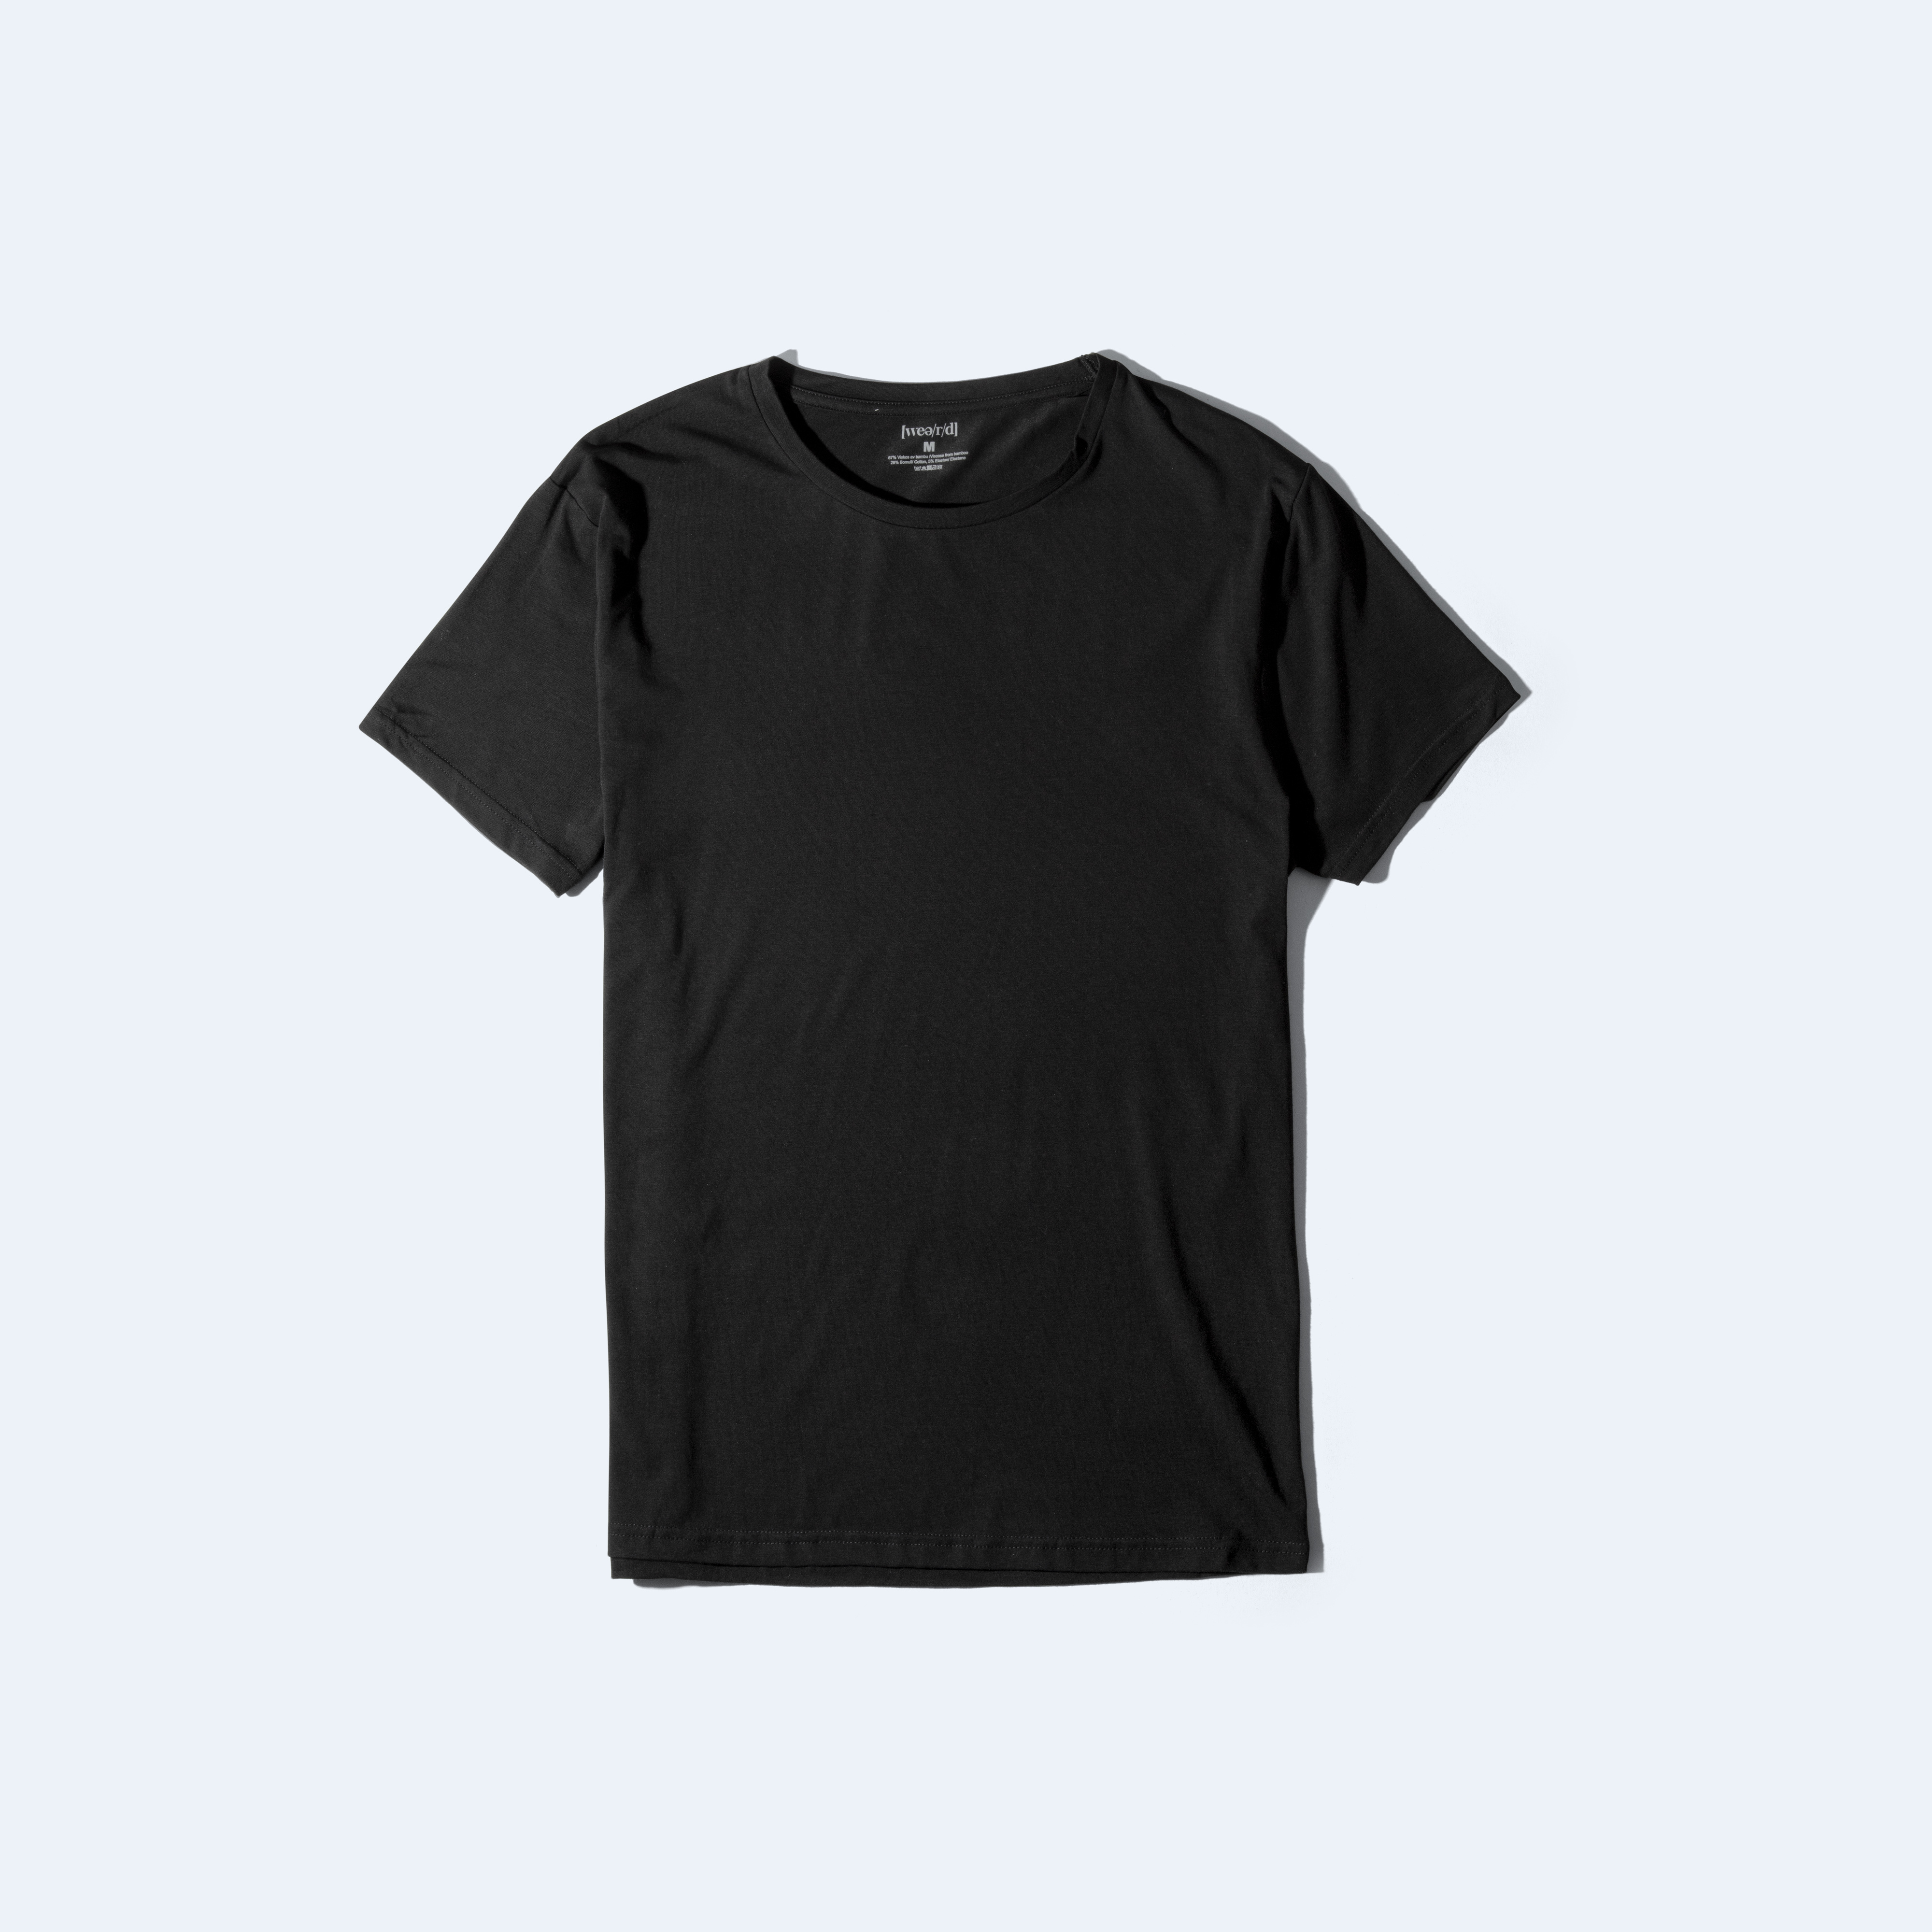 Awesome T-shirt [crew neck] - black